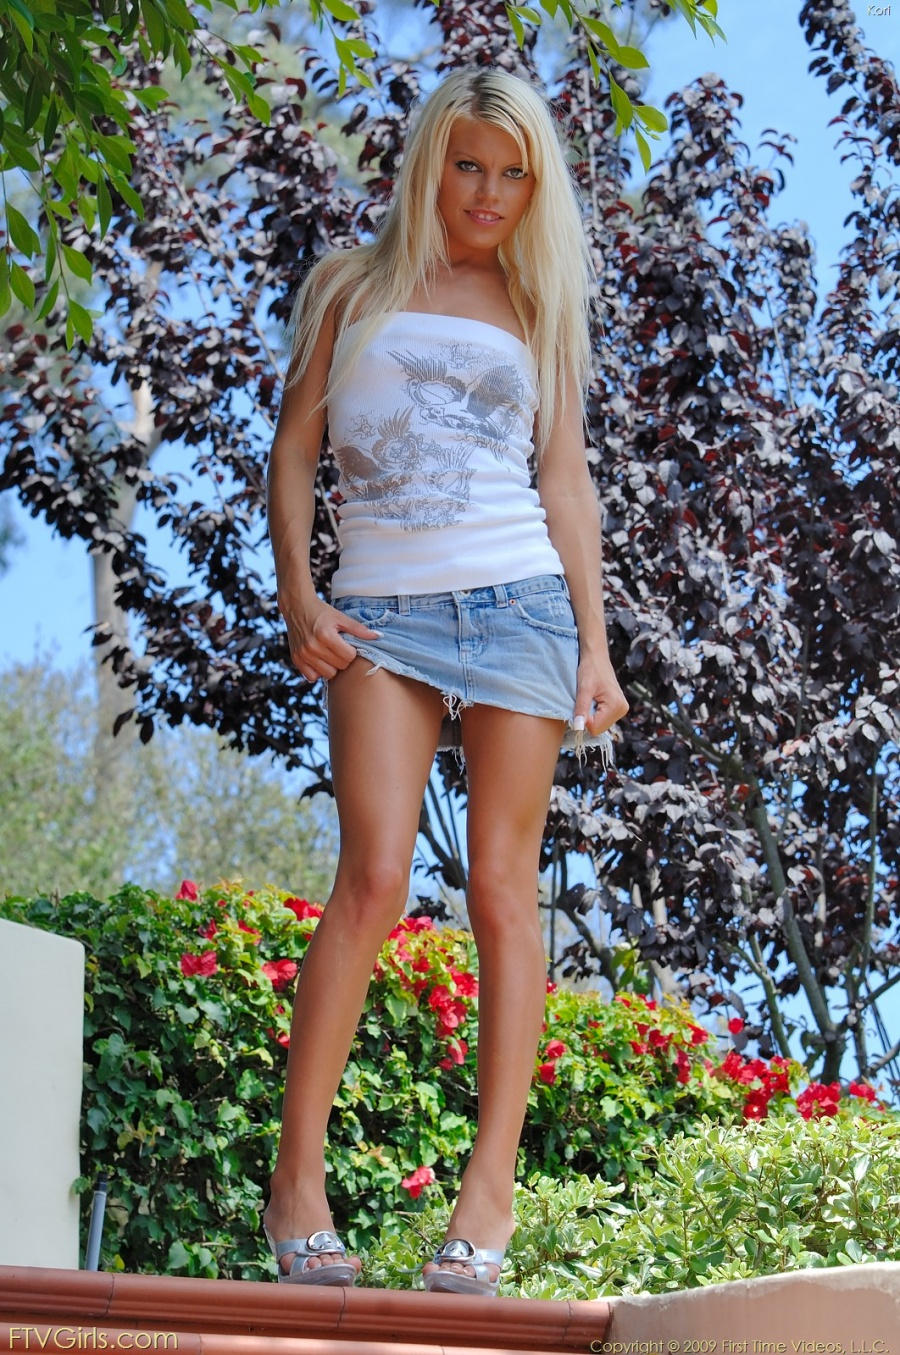 kori from the ftv girls 001 Genres: Classik Sex, Homemade, Oral Sex, Doggystyle, Sex Toys, Group sex